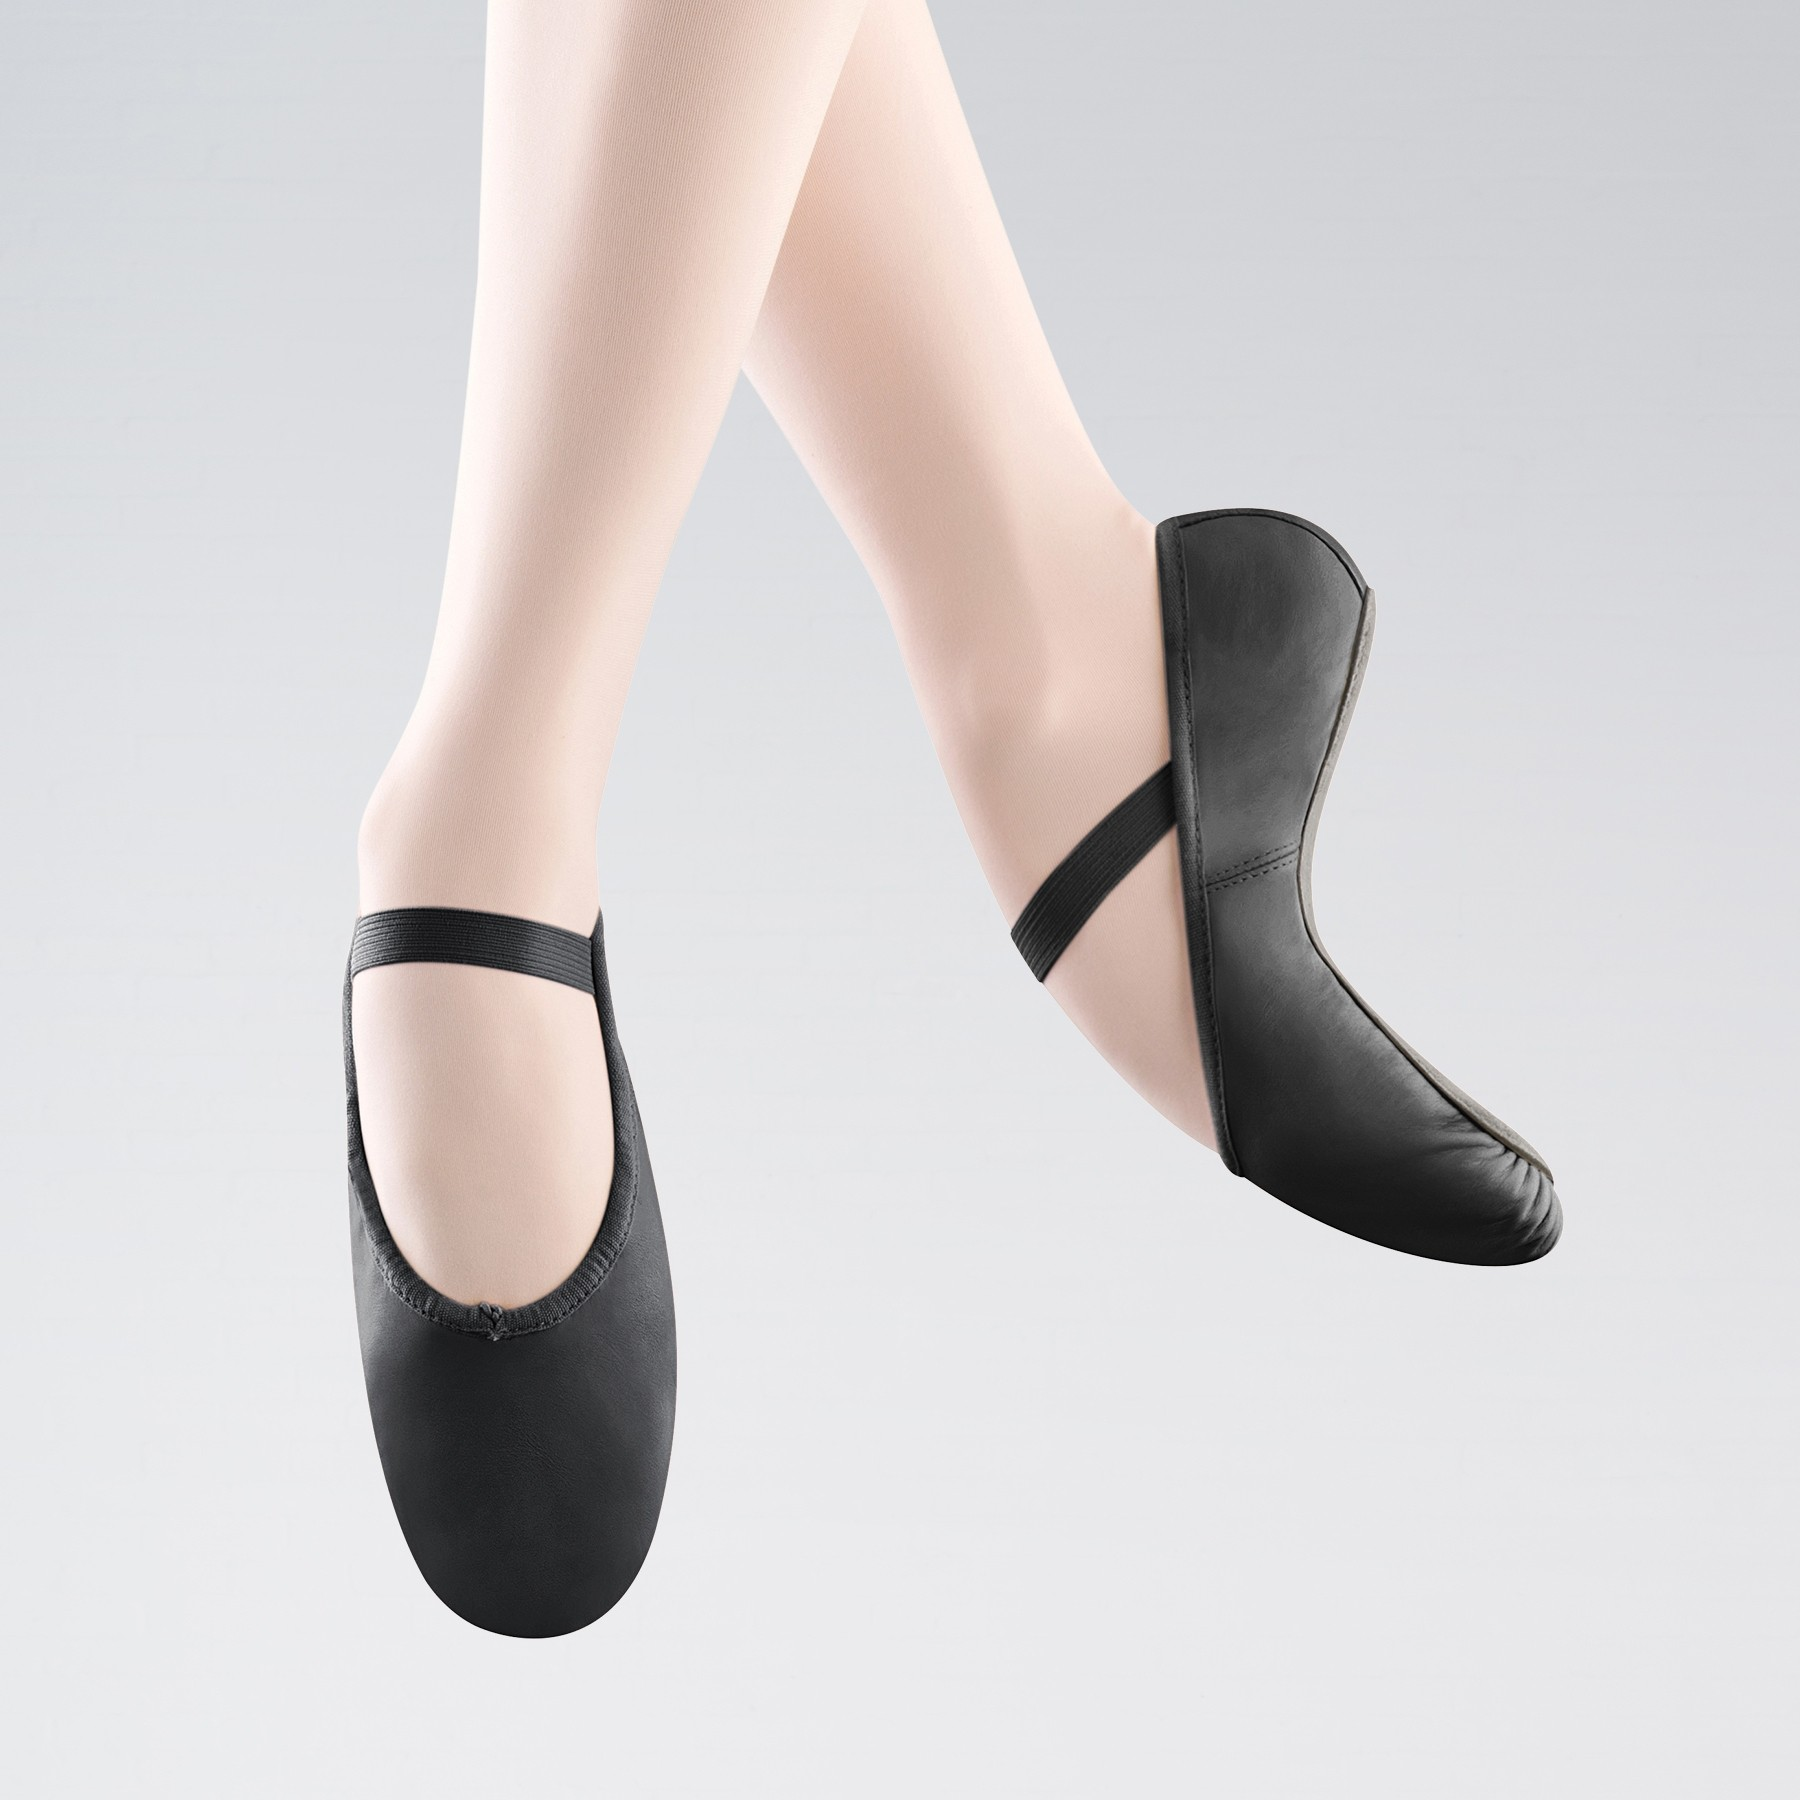 Bloch Arise Full Sole Leather Ballet Shoe (Black)